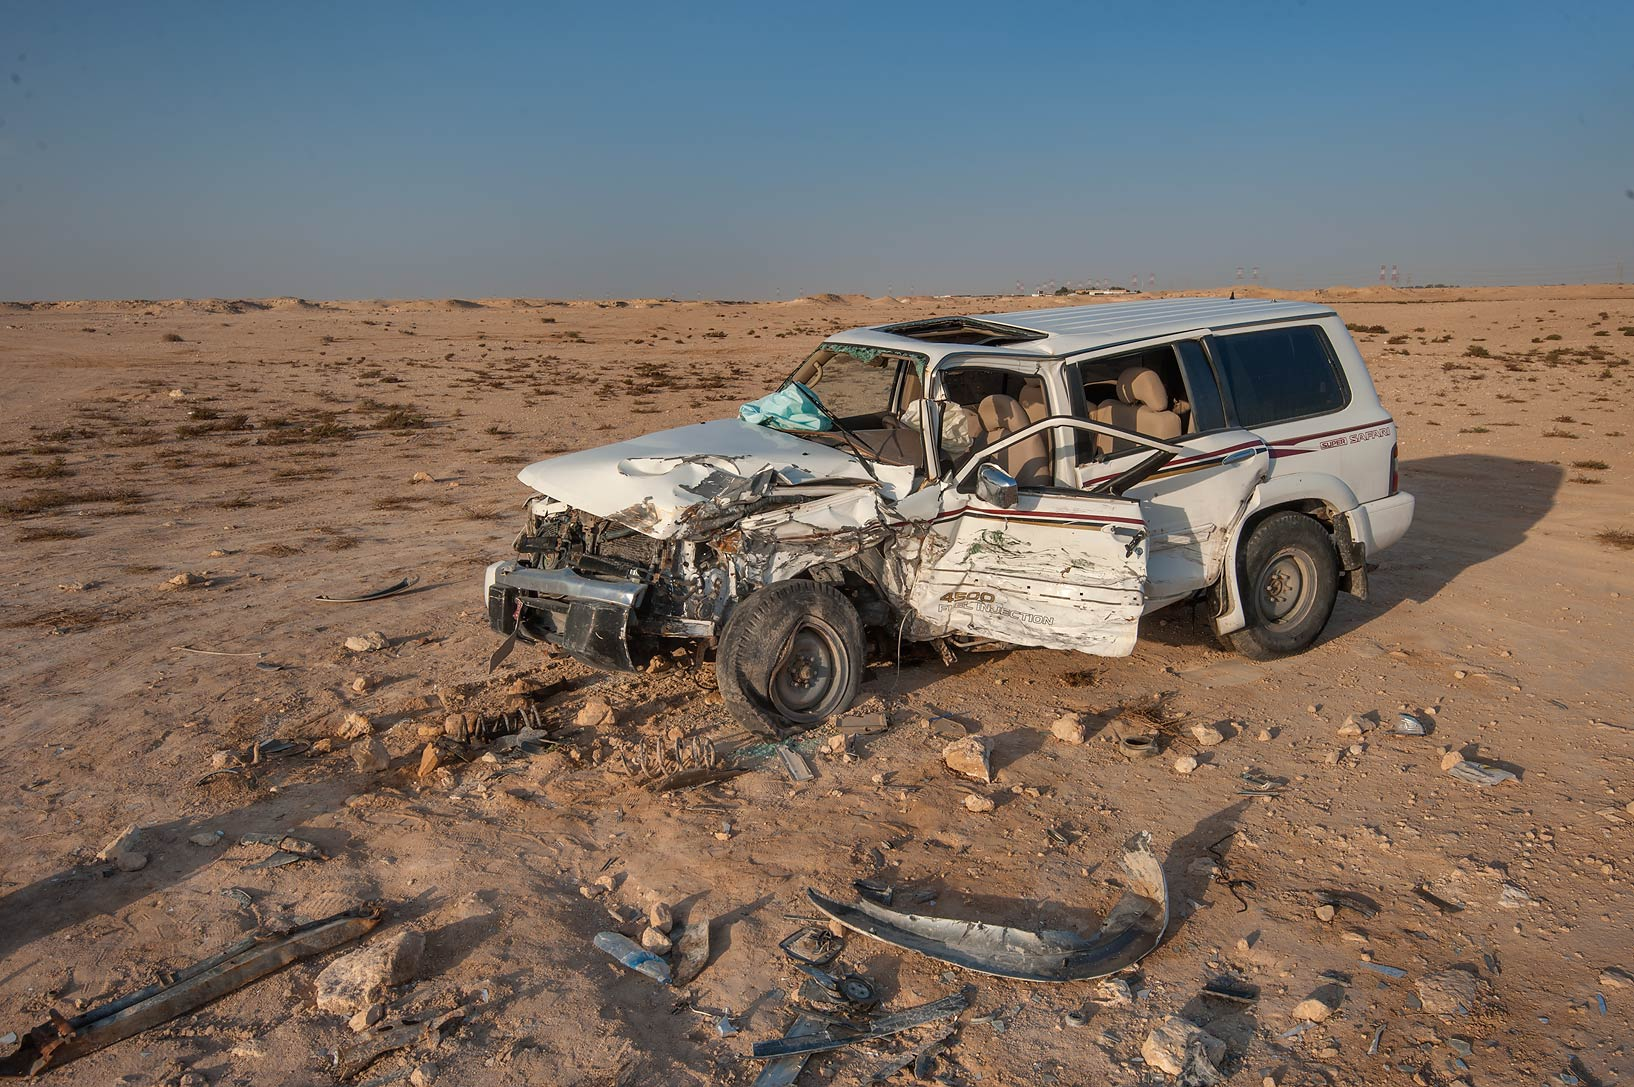 Wrecked car at sunrise in Al Jefair. Al Thakhira, Qatar